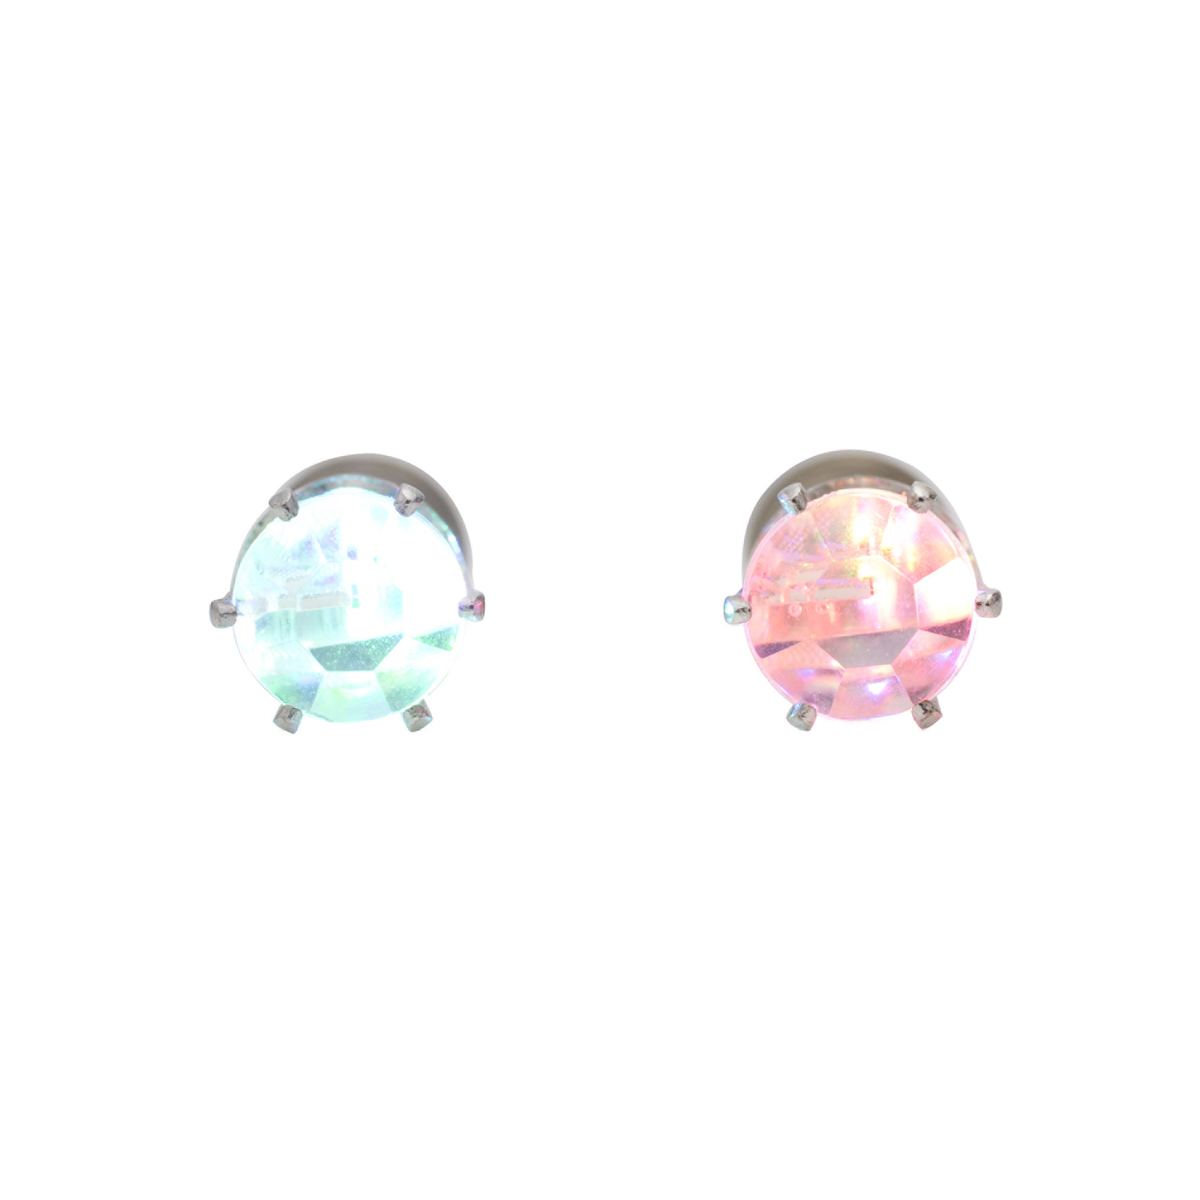 Led Earrings Flashing Earrings Led Multi Color Flash Earrings Night Ice Led